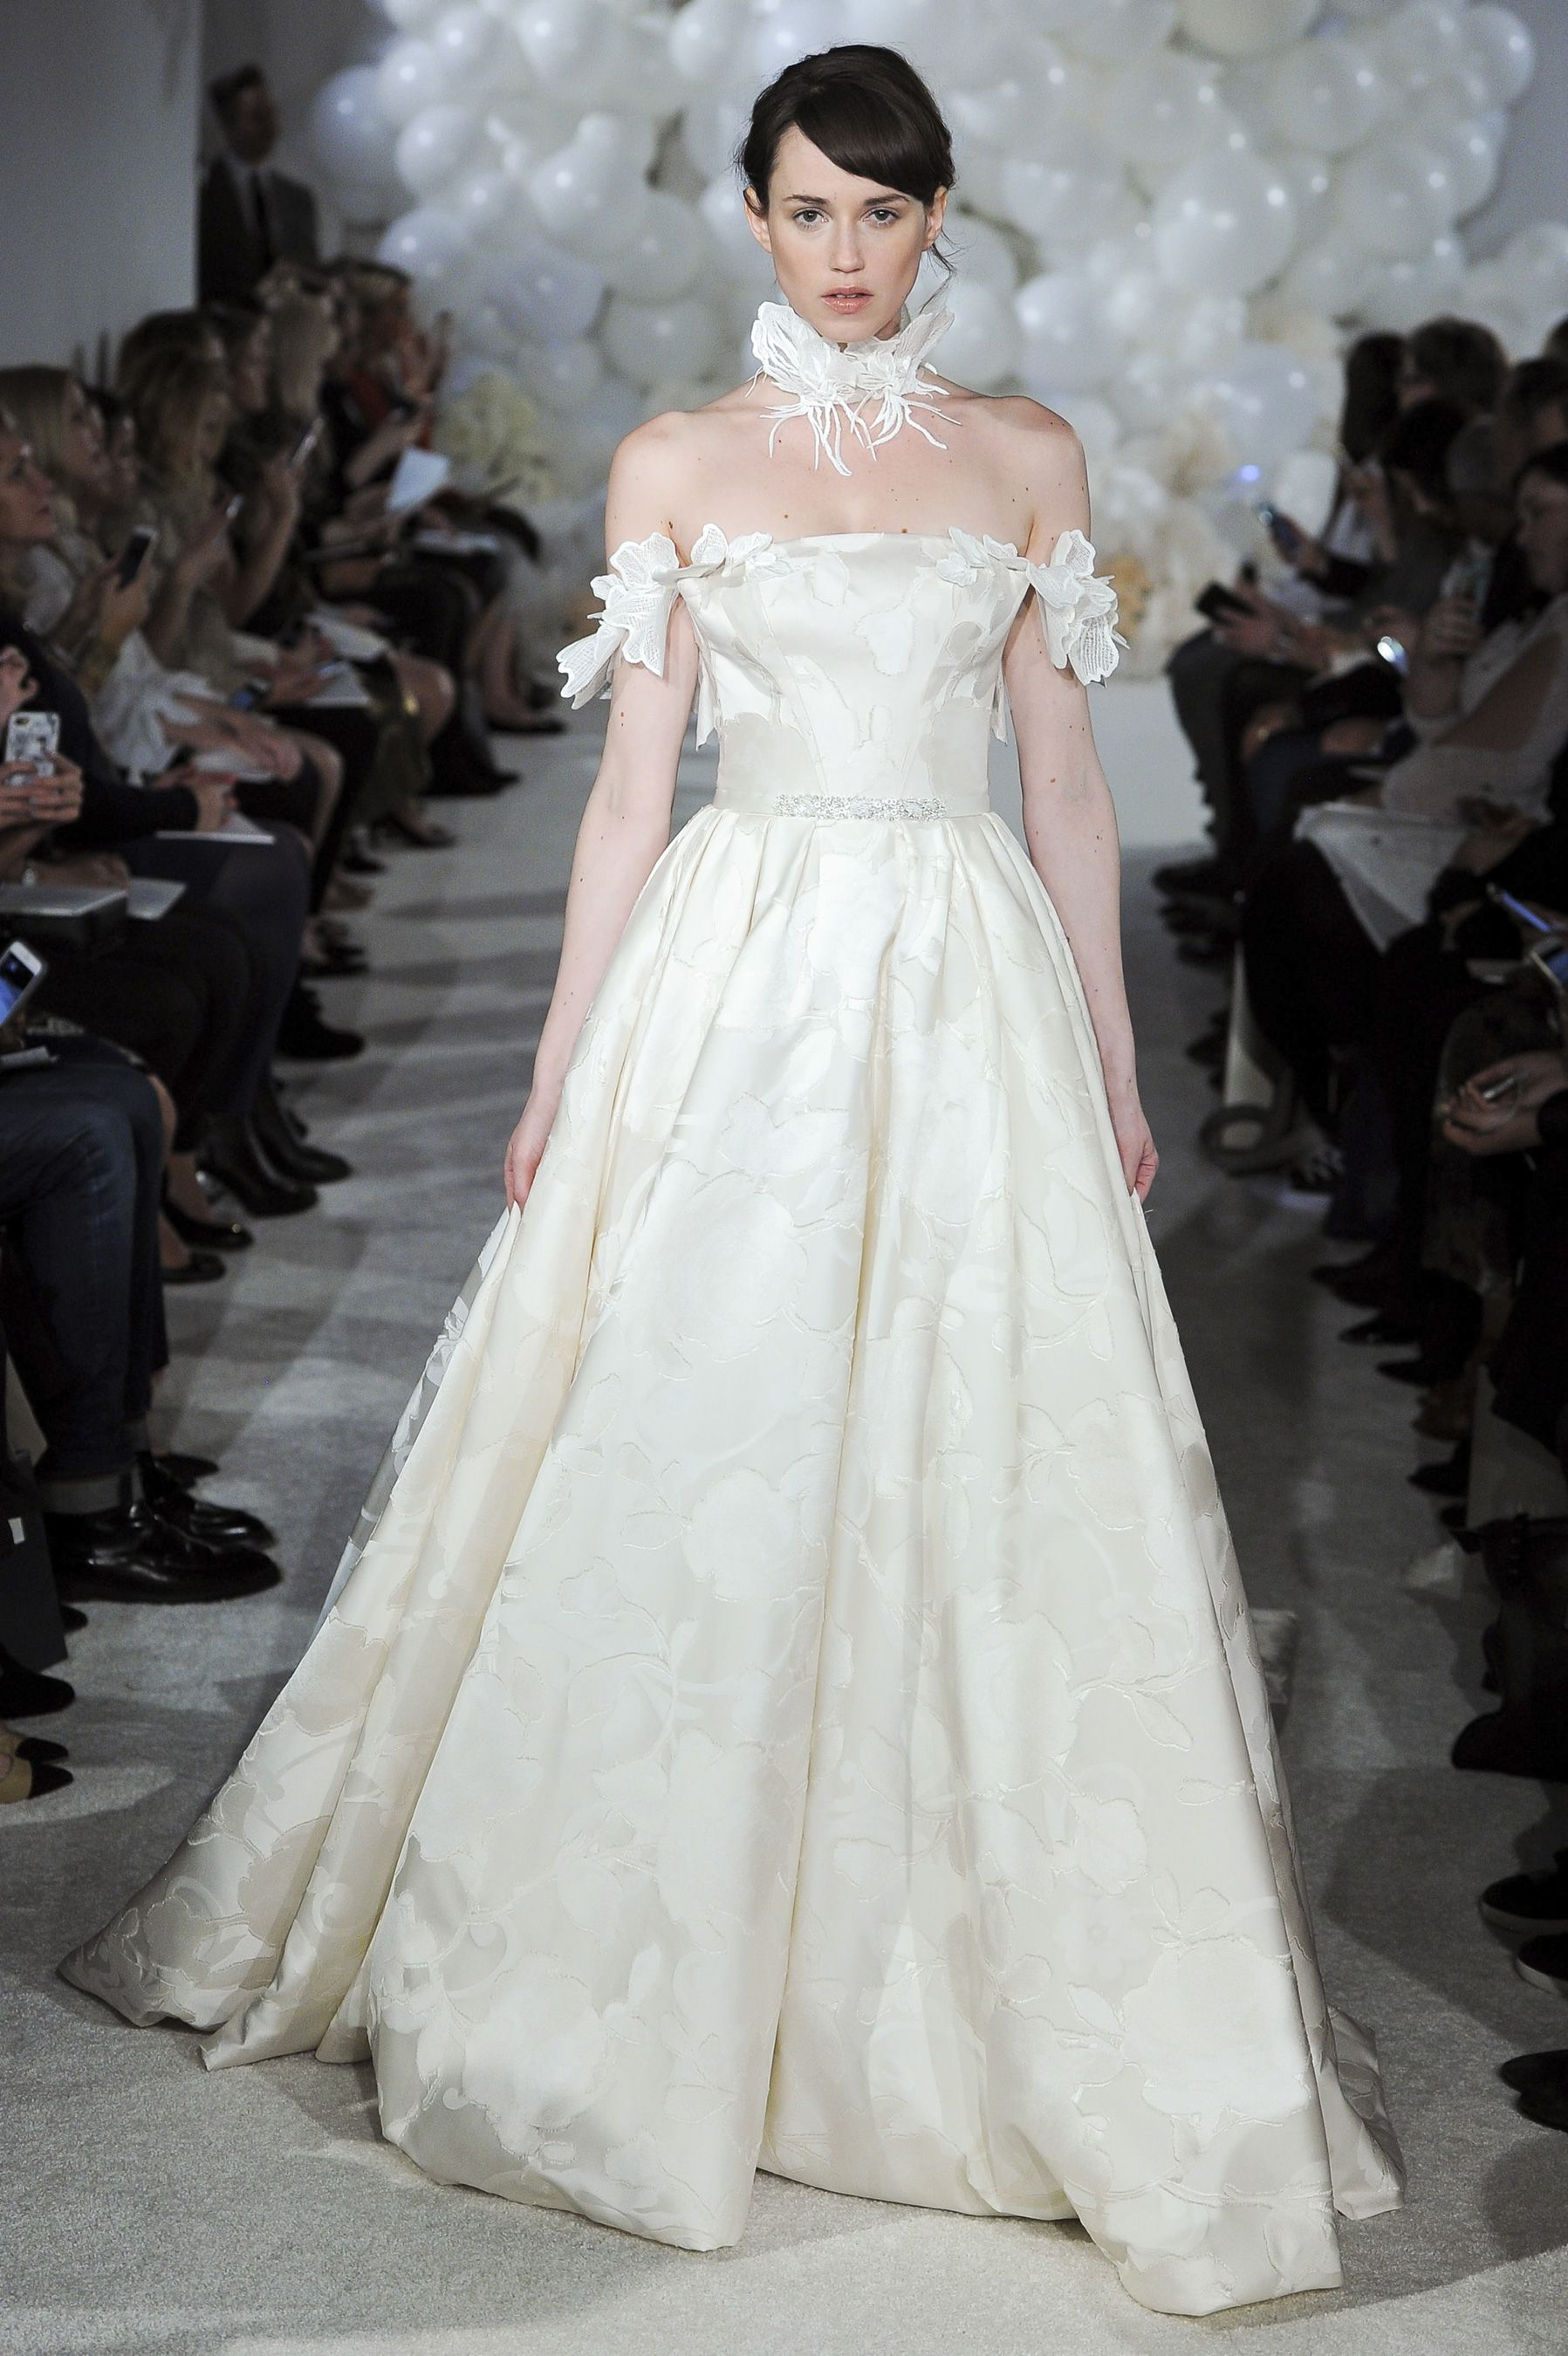 Mira zwillinger spring bridal fashion show nyfw new york